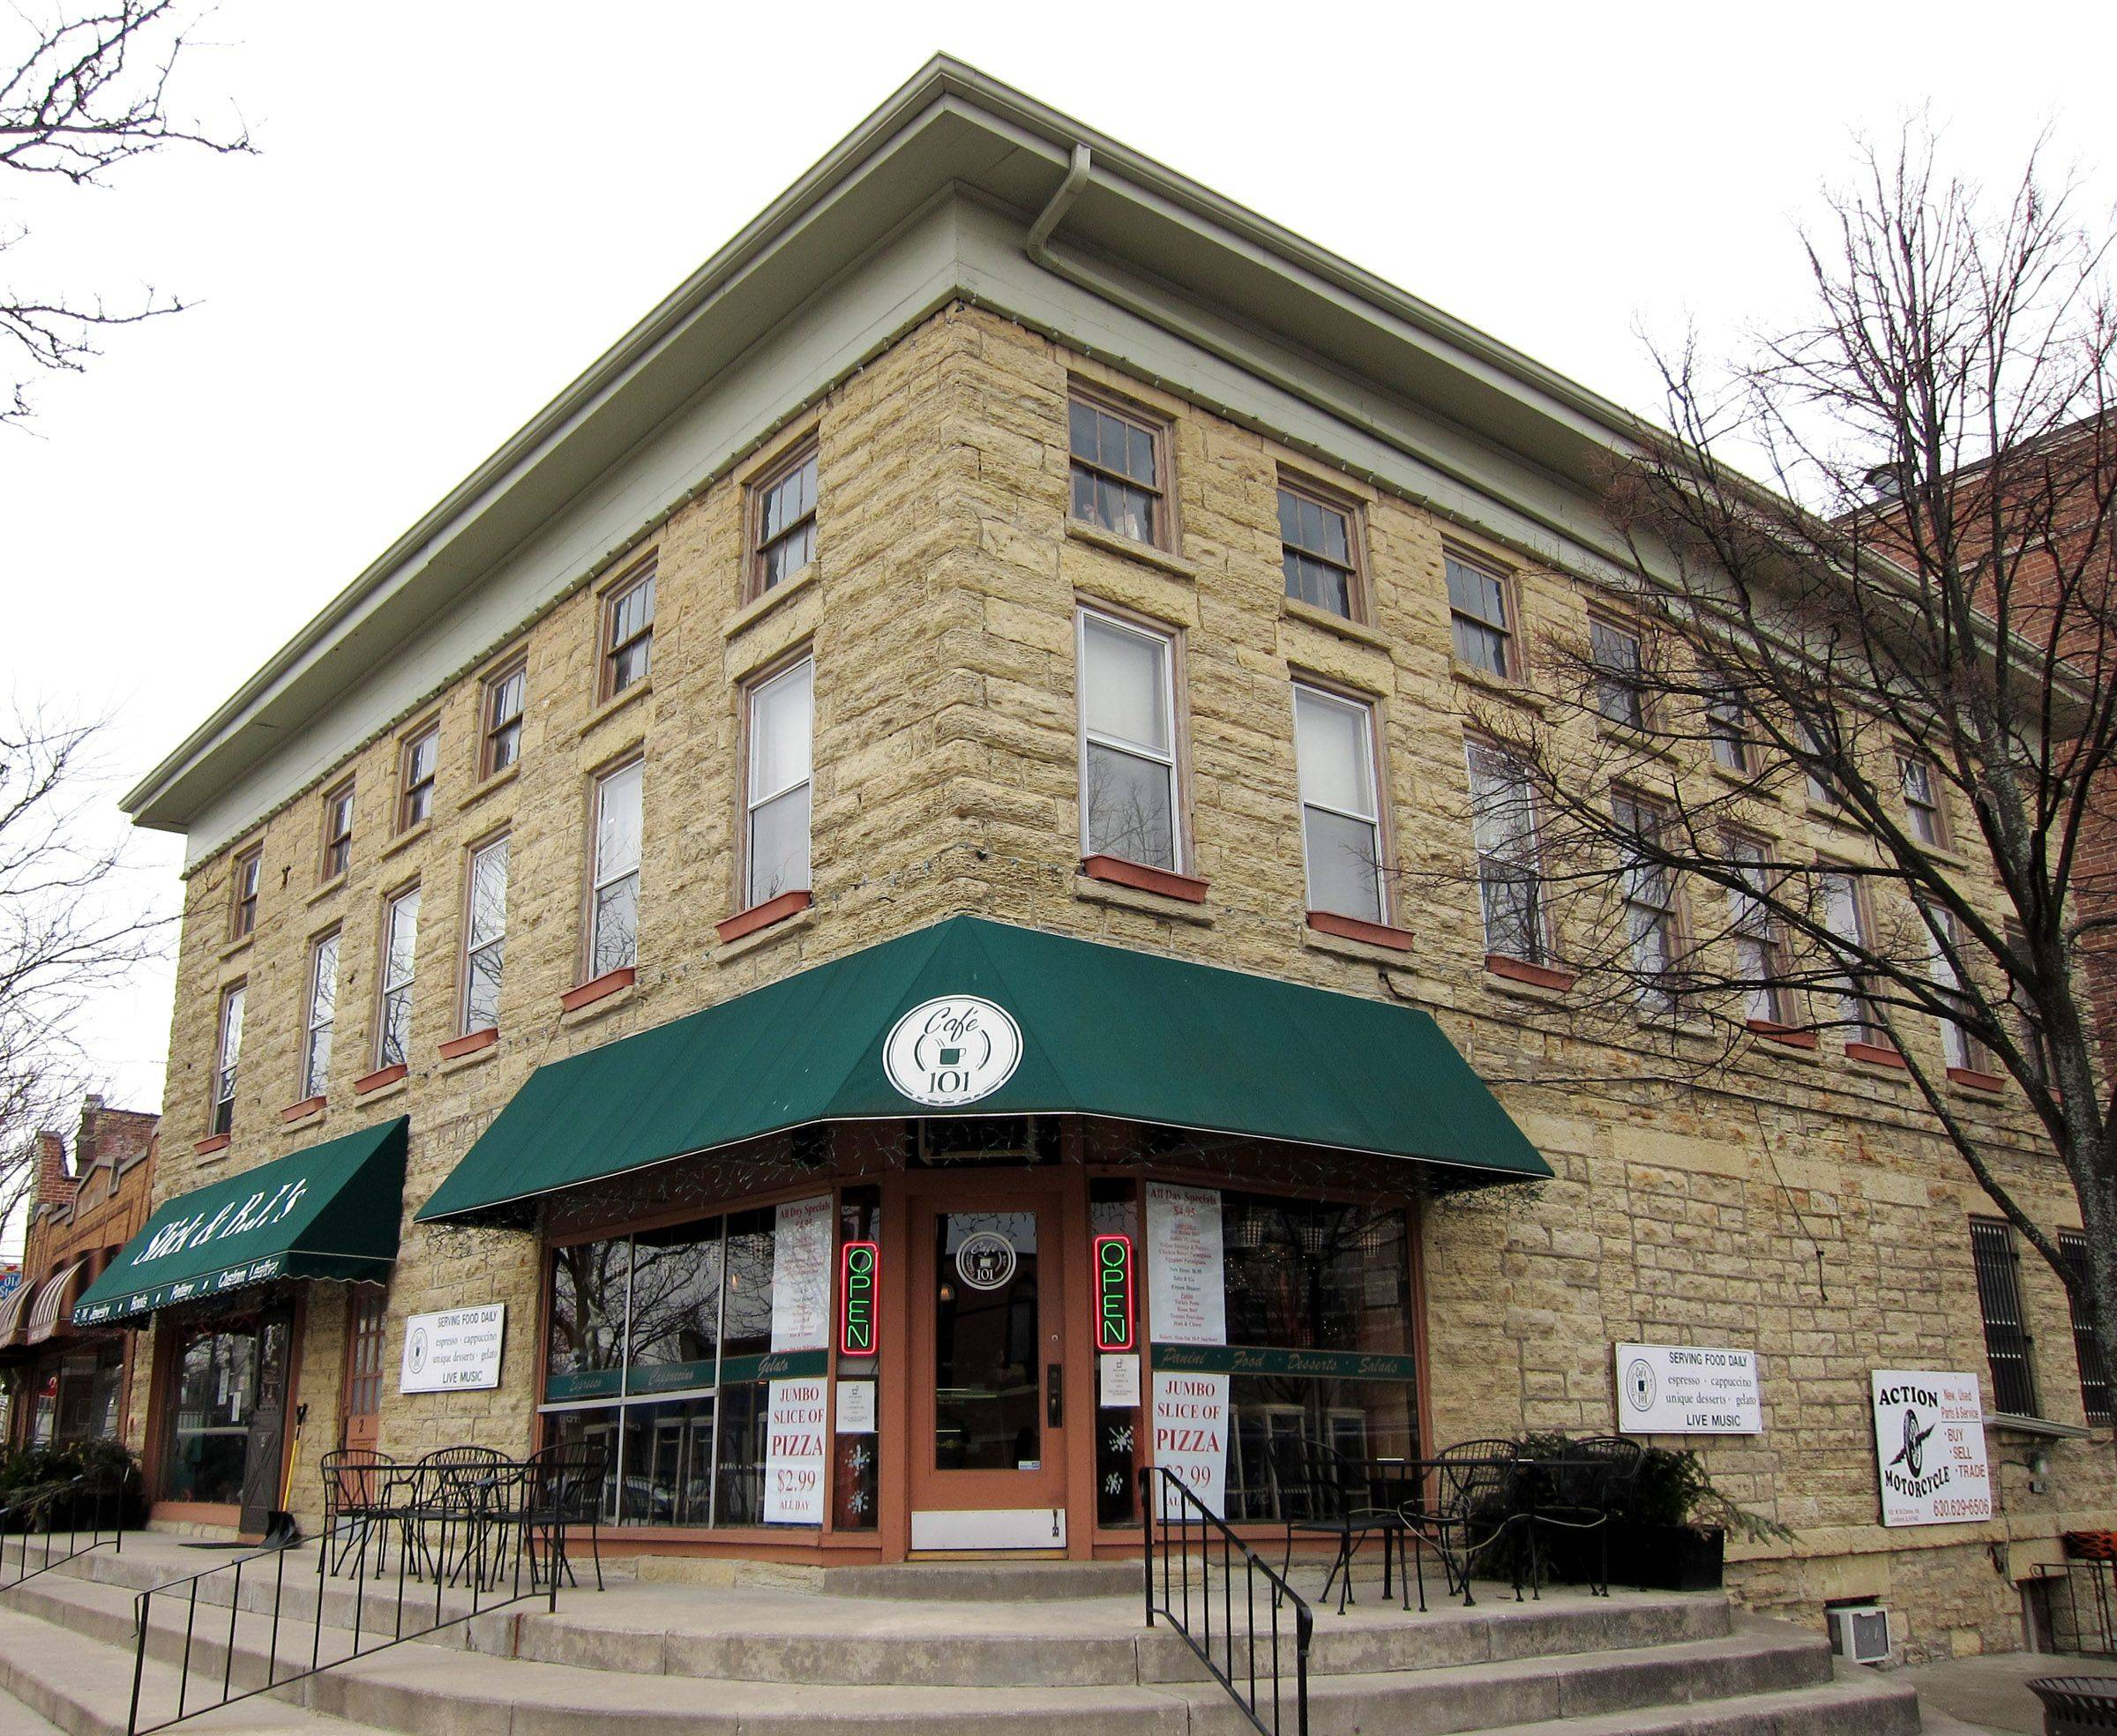 The building at 101 W. St. Charles Road, which used to be The Lombard Hotel, now is recognized with a honorary plaque from the Lombard Historical Society.